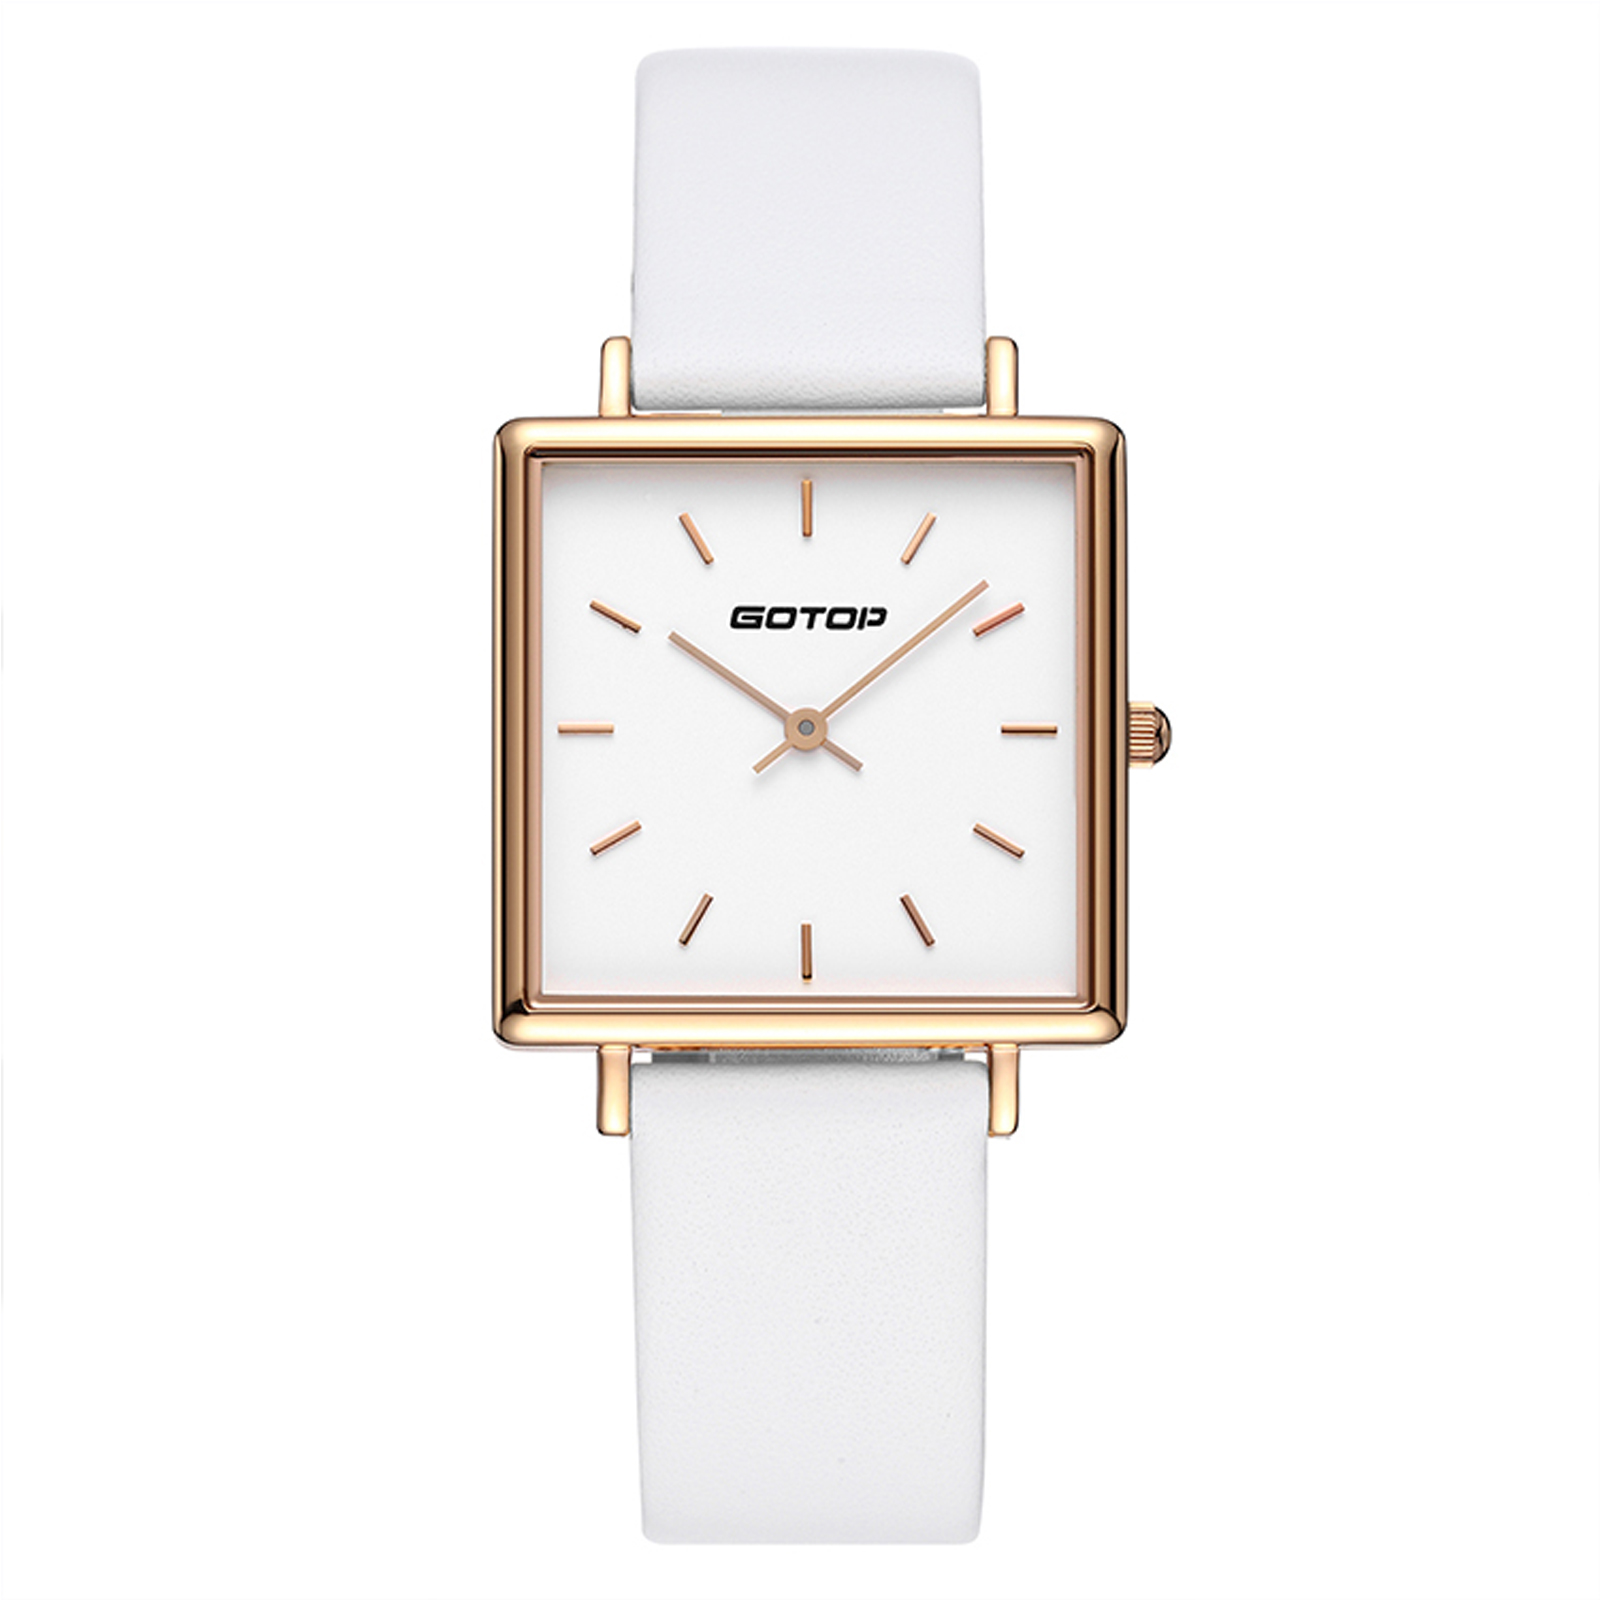 Square Rose Gold And White Women's Watch In Stainless Steel And Leather